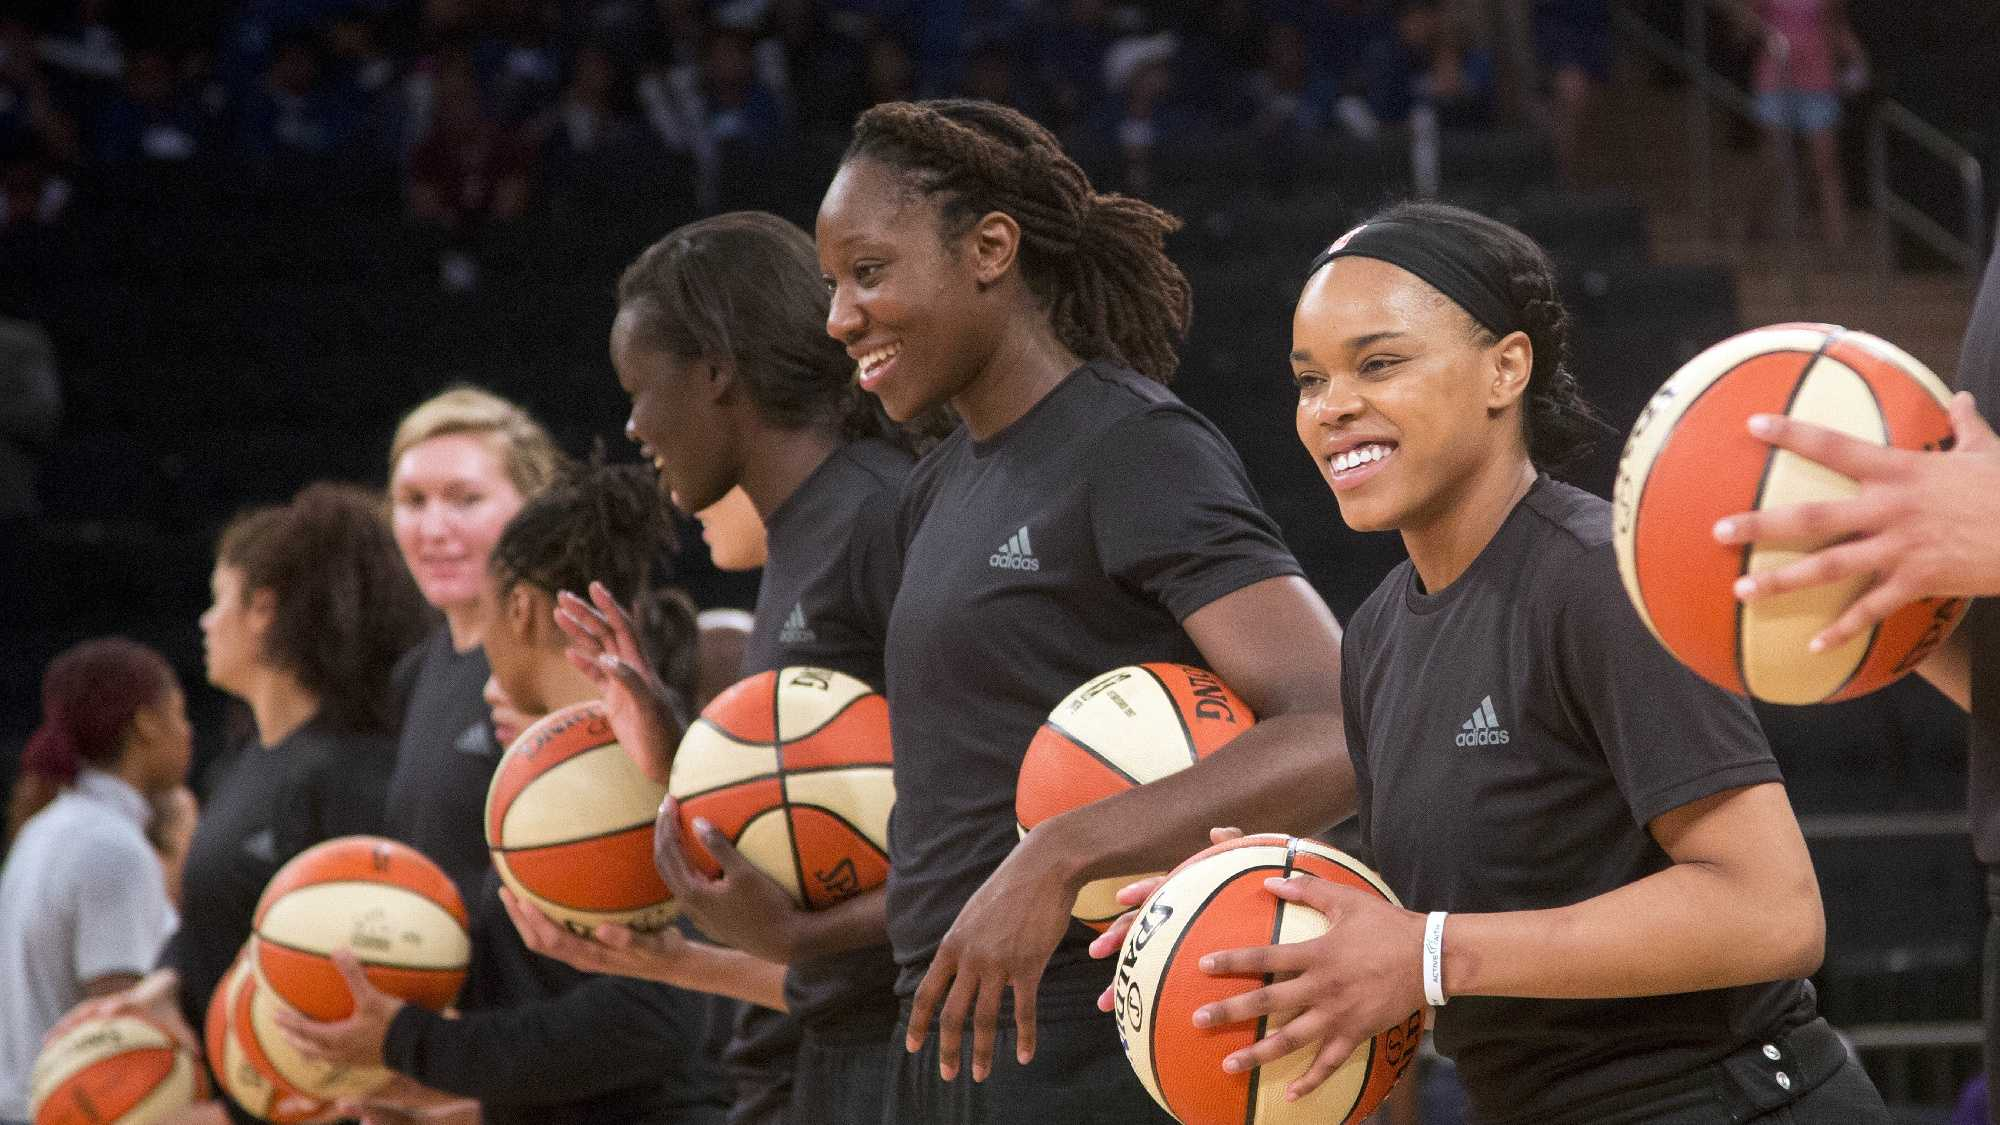 In this Wednesday, July 13, 2016 file photo, members of the New York Liberty basketball team await the start of a game against the Atlanta Dream, in New York. The WNBA has fined the New York Liberty, Phoenix Mercury and Indiana Fever and their players for wearing plain black warm-up shirts in the wake of recent shootings by and against police officers. All three teams were fined $5,000 and each player was fined $500. While the shirts were the Adidas brand - the official outfitter of the league - WNBA rules state that uniforms may not be altered in any way.